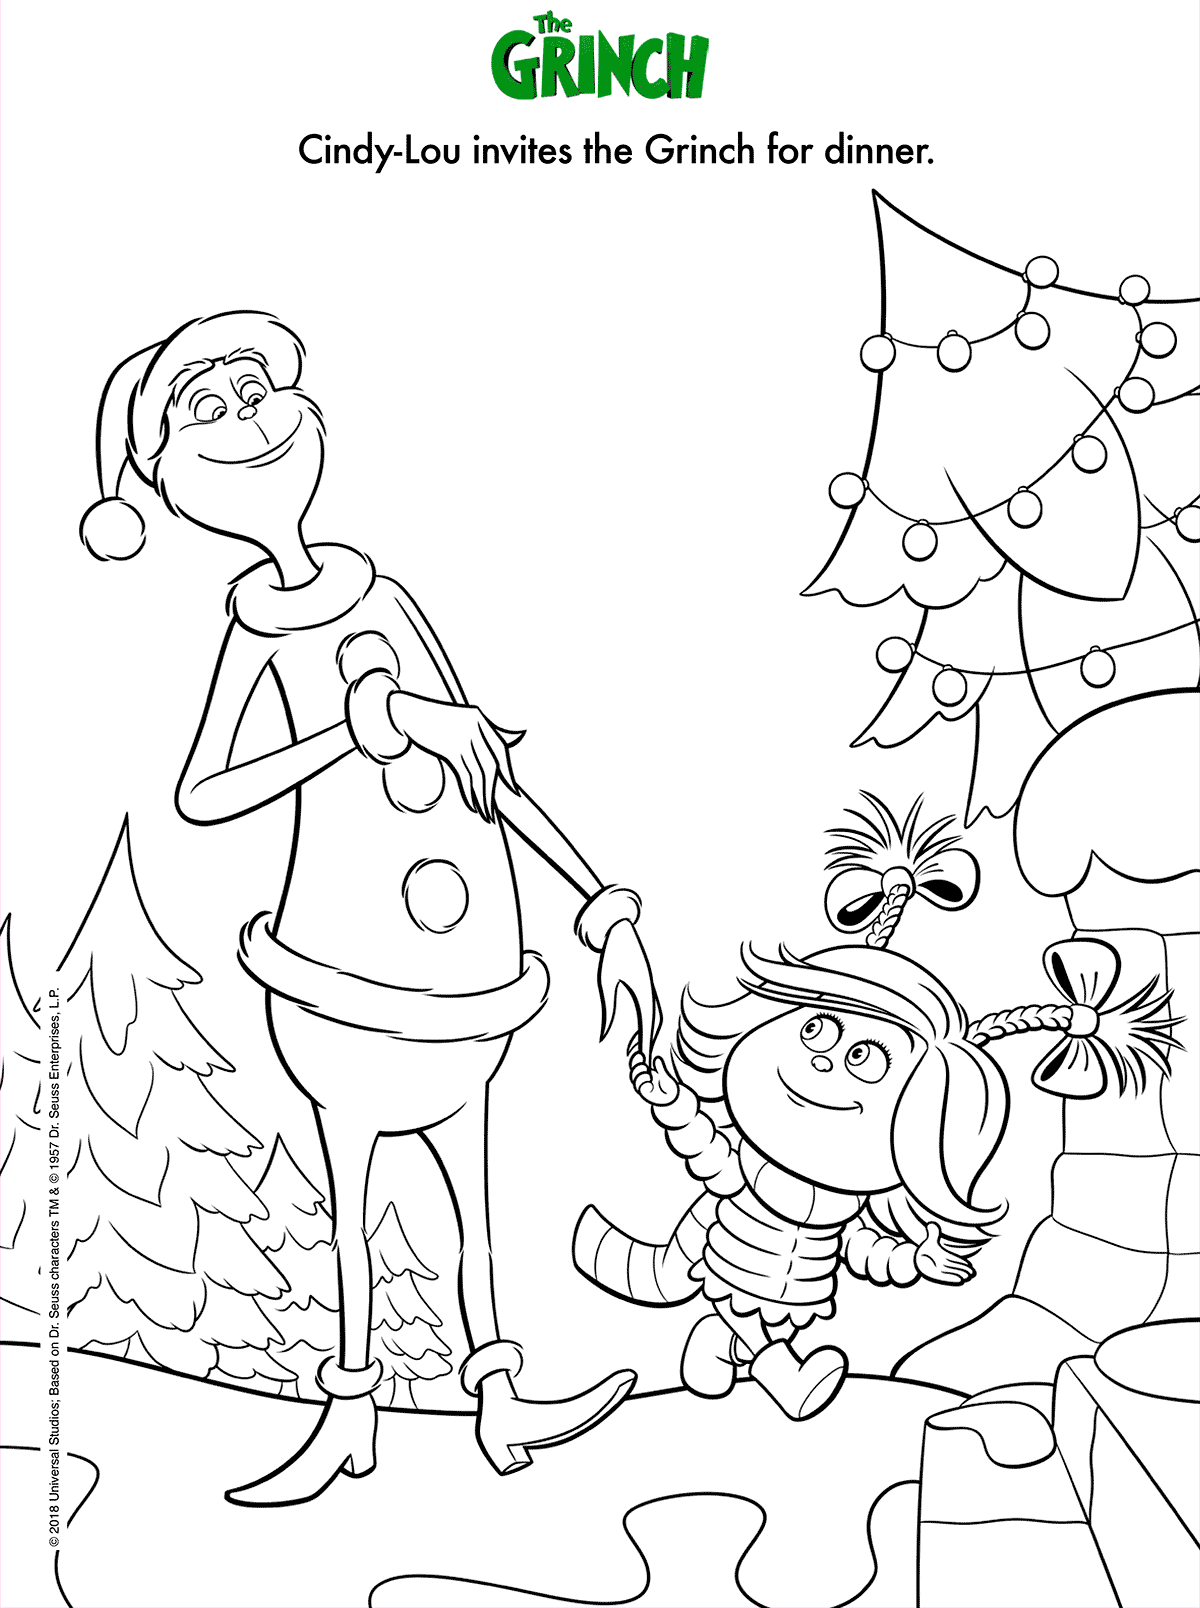 Dr Seuss The Grinch Film Coloring Page (With images